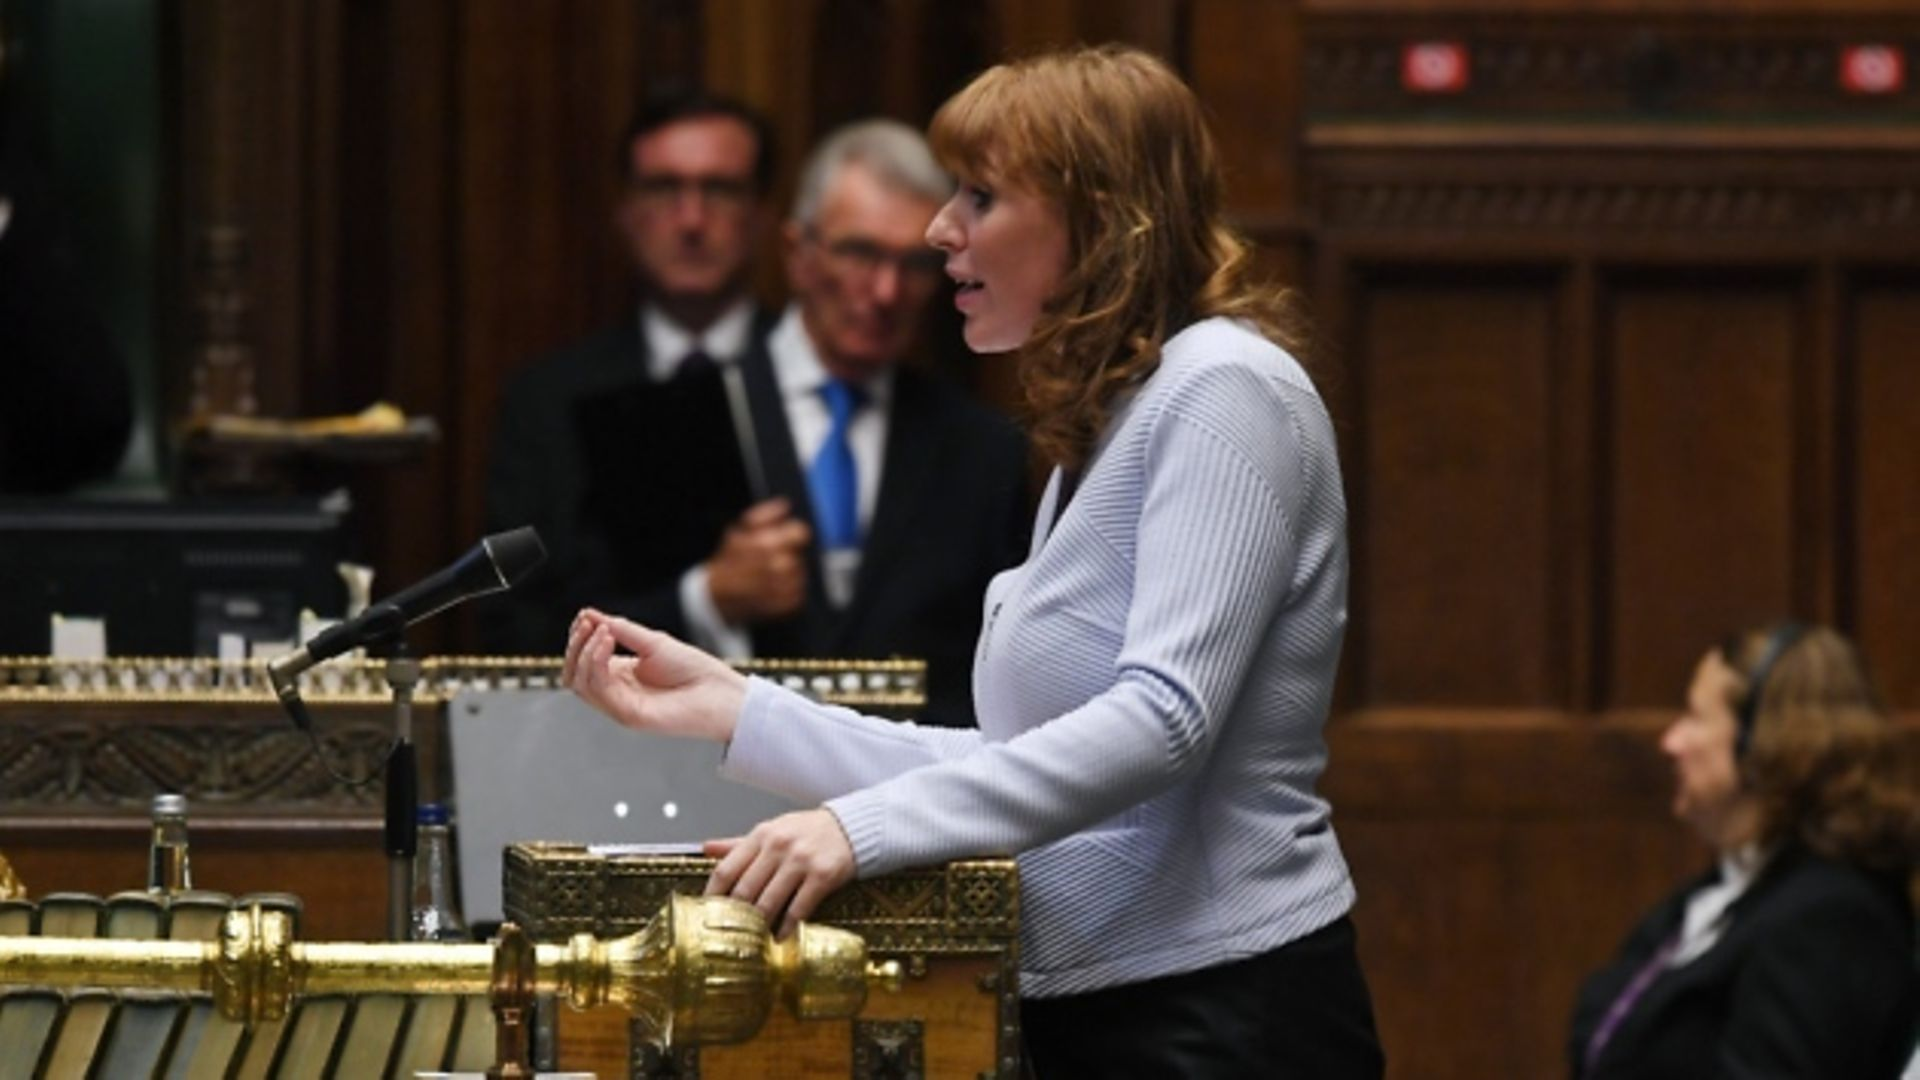 Deputy Labour leader Angela Rayner speaking at Prime Minister's Questions in the House of Commons. Photograph: Jessica Taylor/UK Parliament. - Credit: Jessica Taylor/UK Parliament